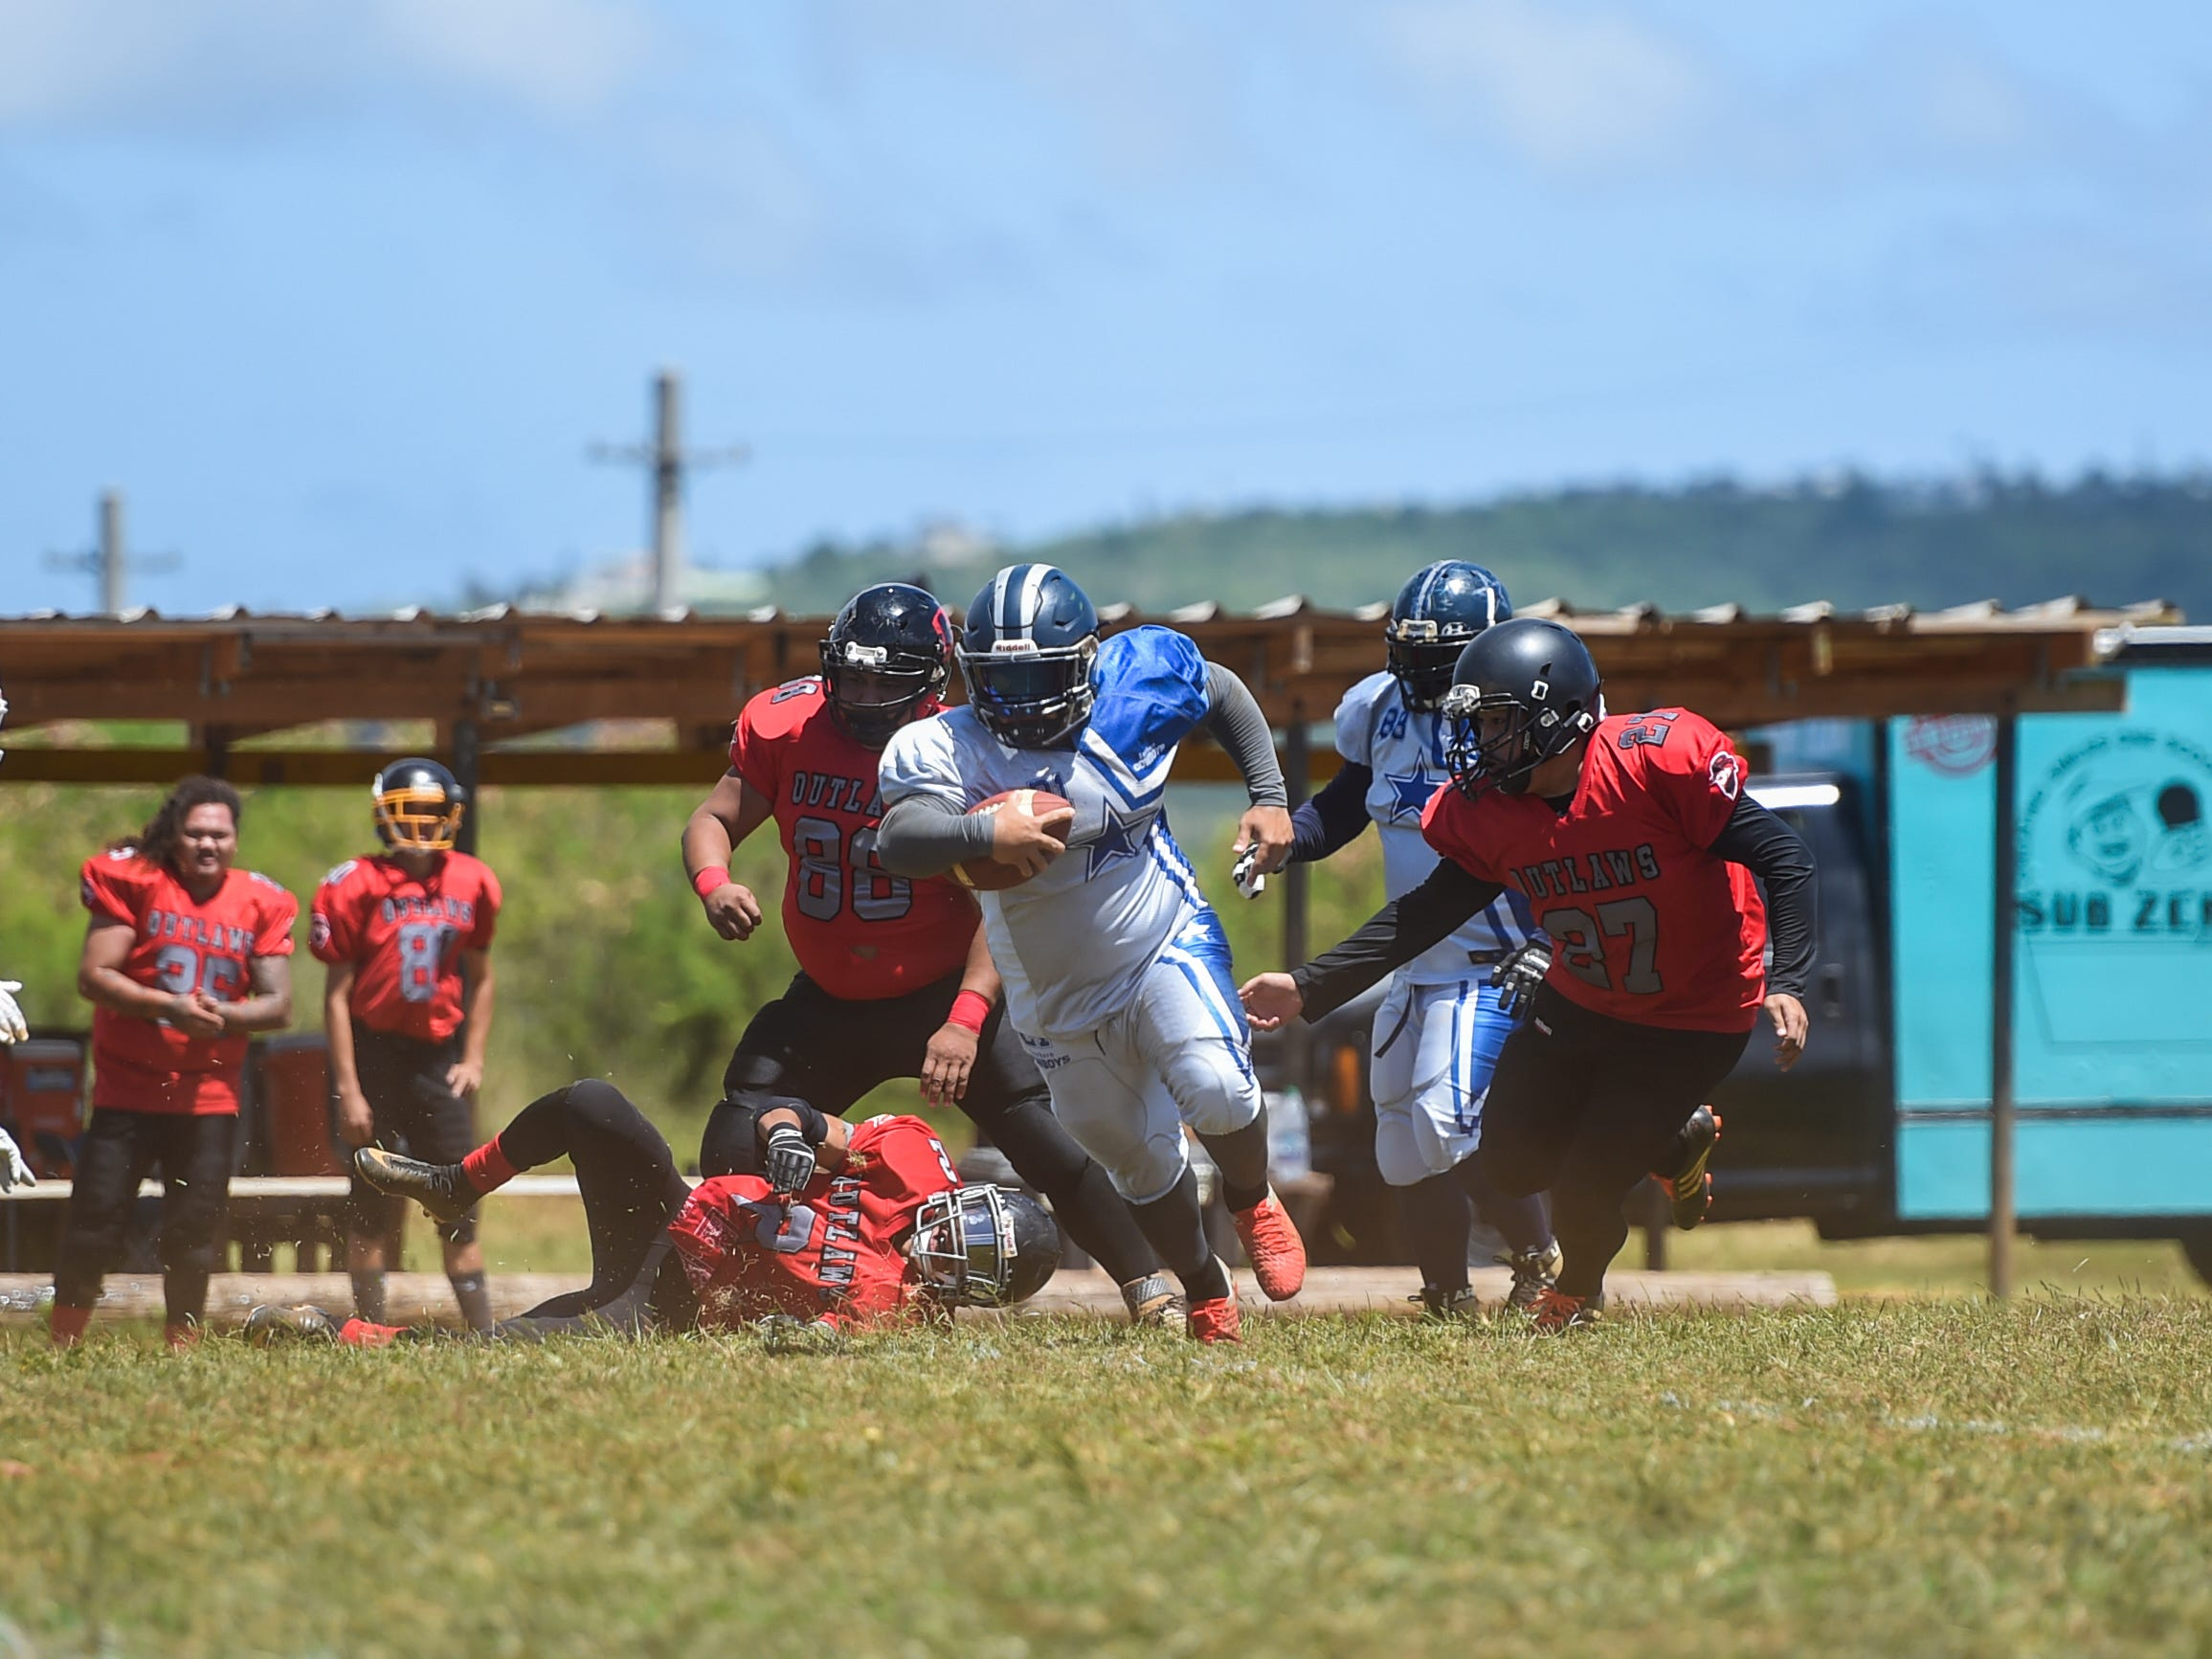 Southern Cowboys player Adam Lumba runs the ball against the Outlaws during a Budweiser Guahan Varsity Football League game at Eagles Field in Mangilao, March 9, 2019.